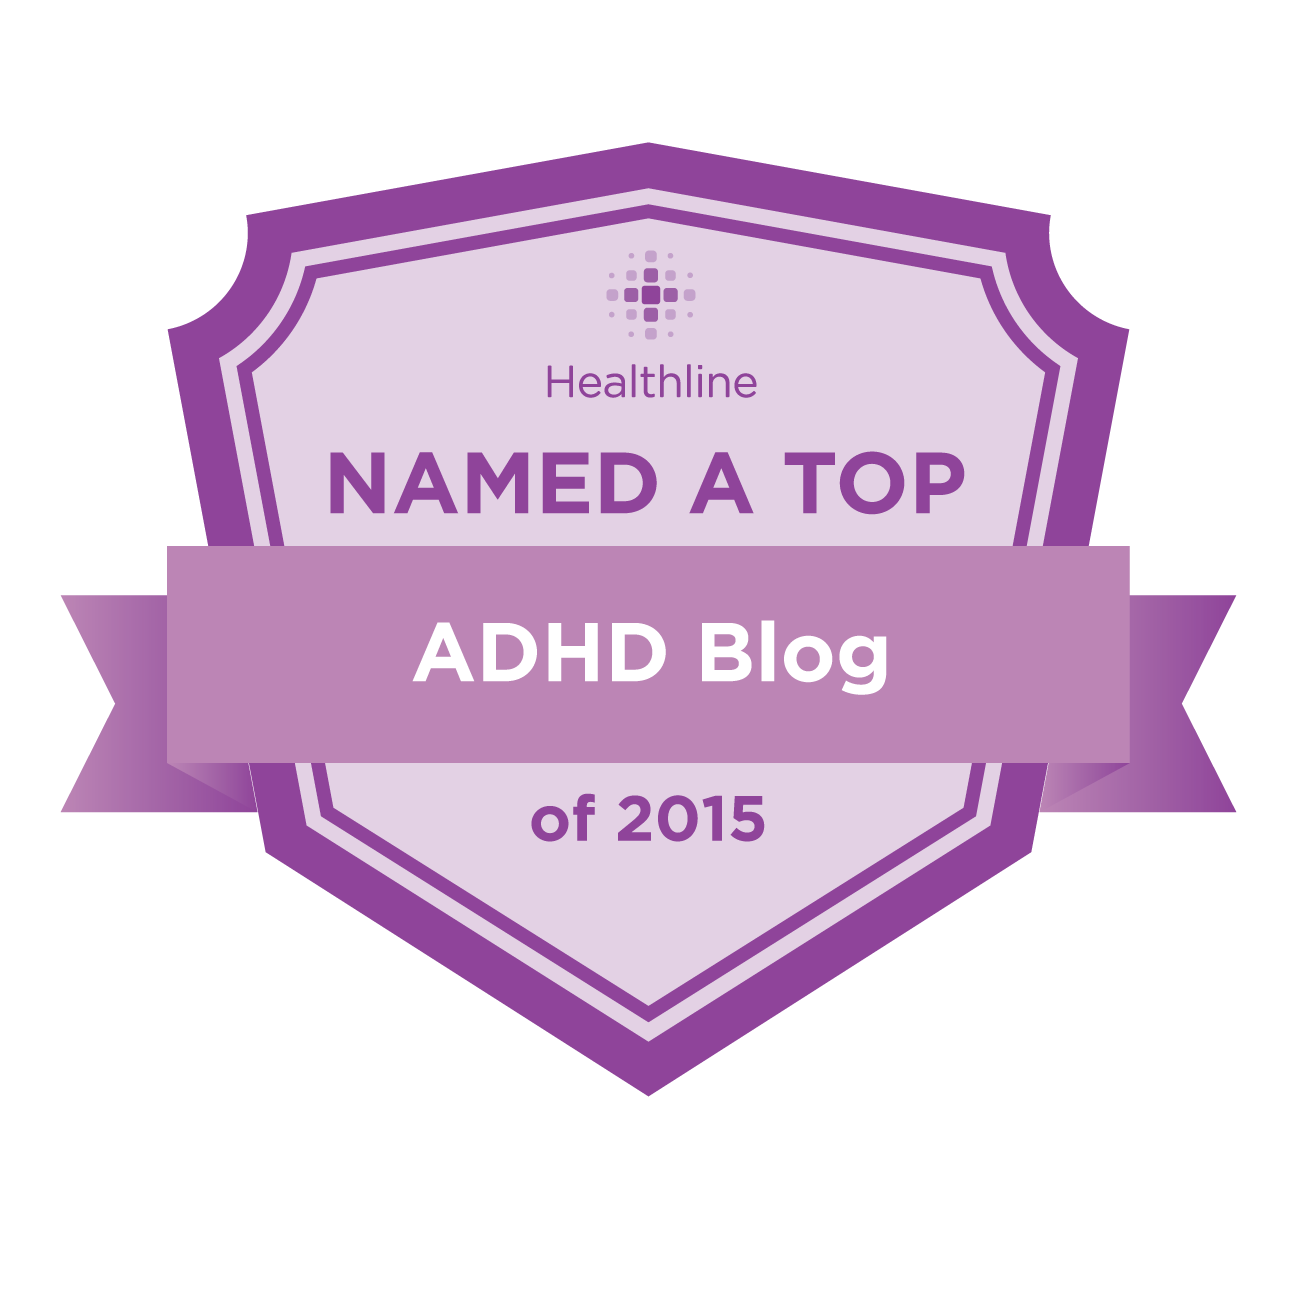 adhd best blogs badge vspace=